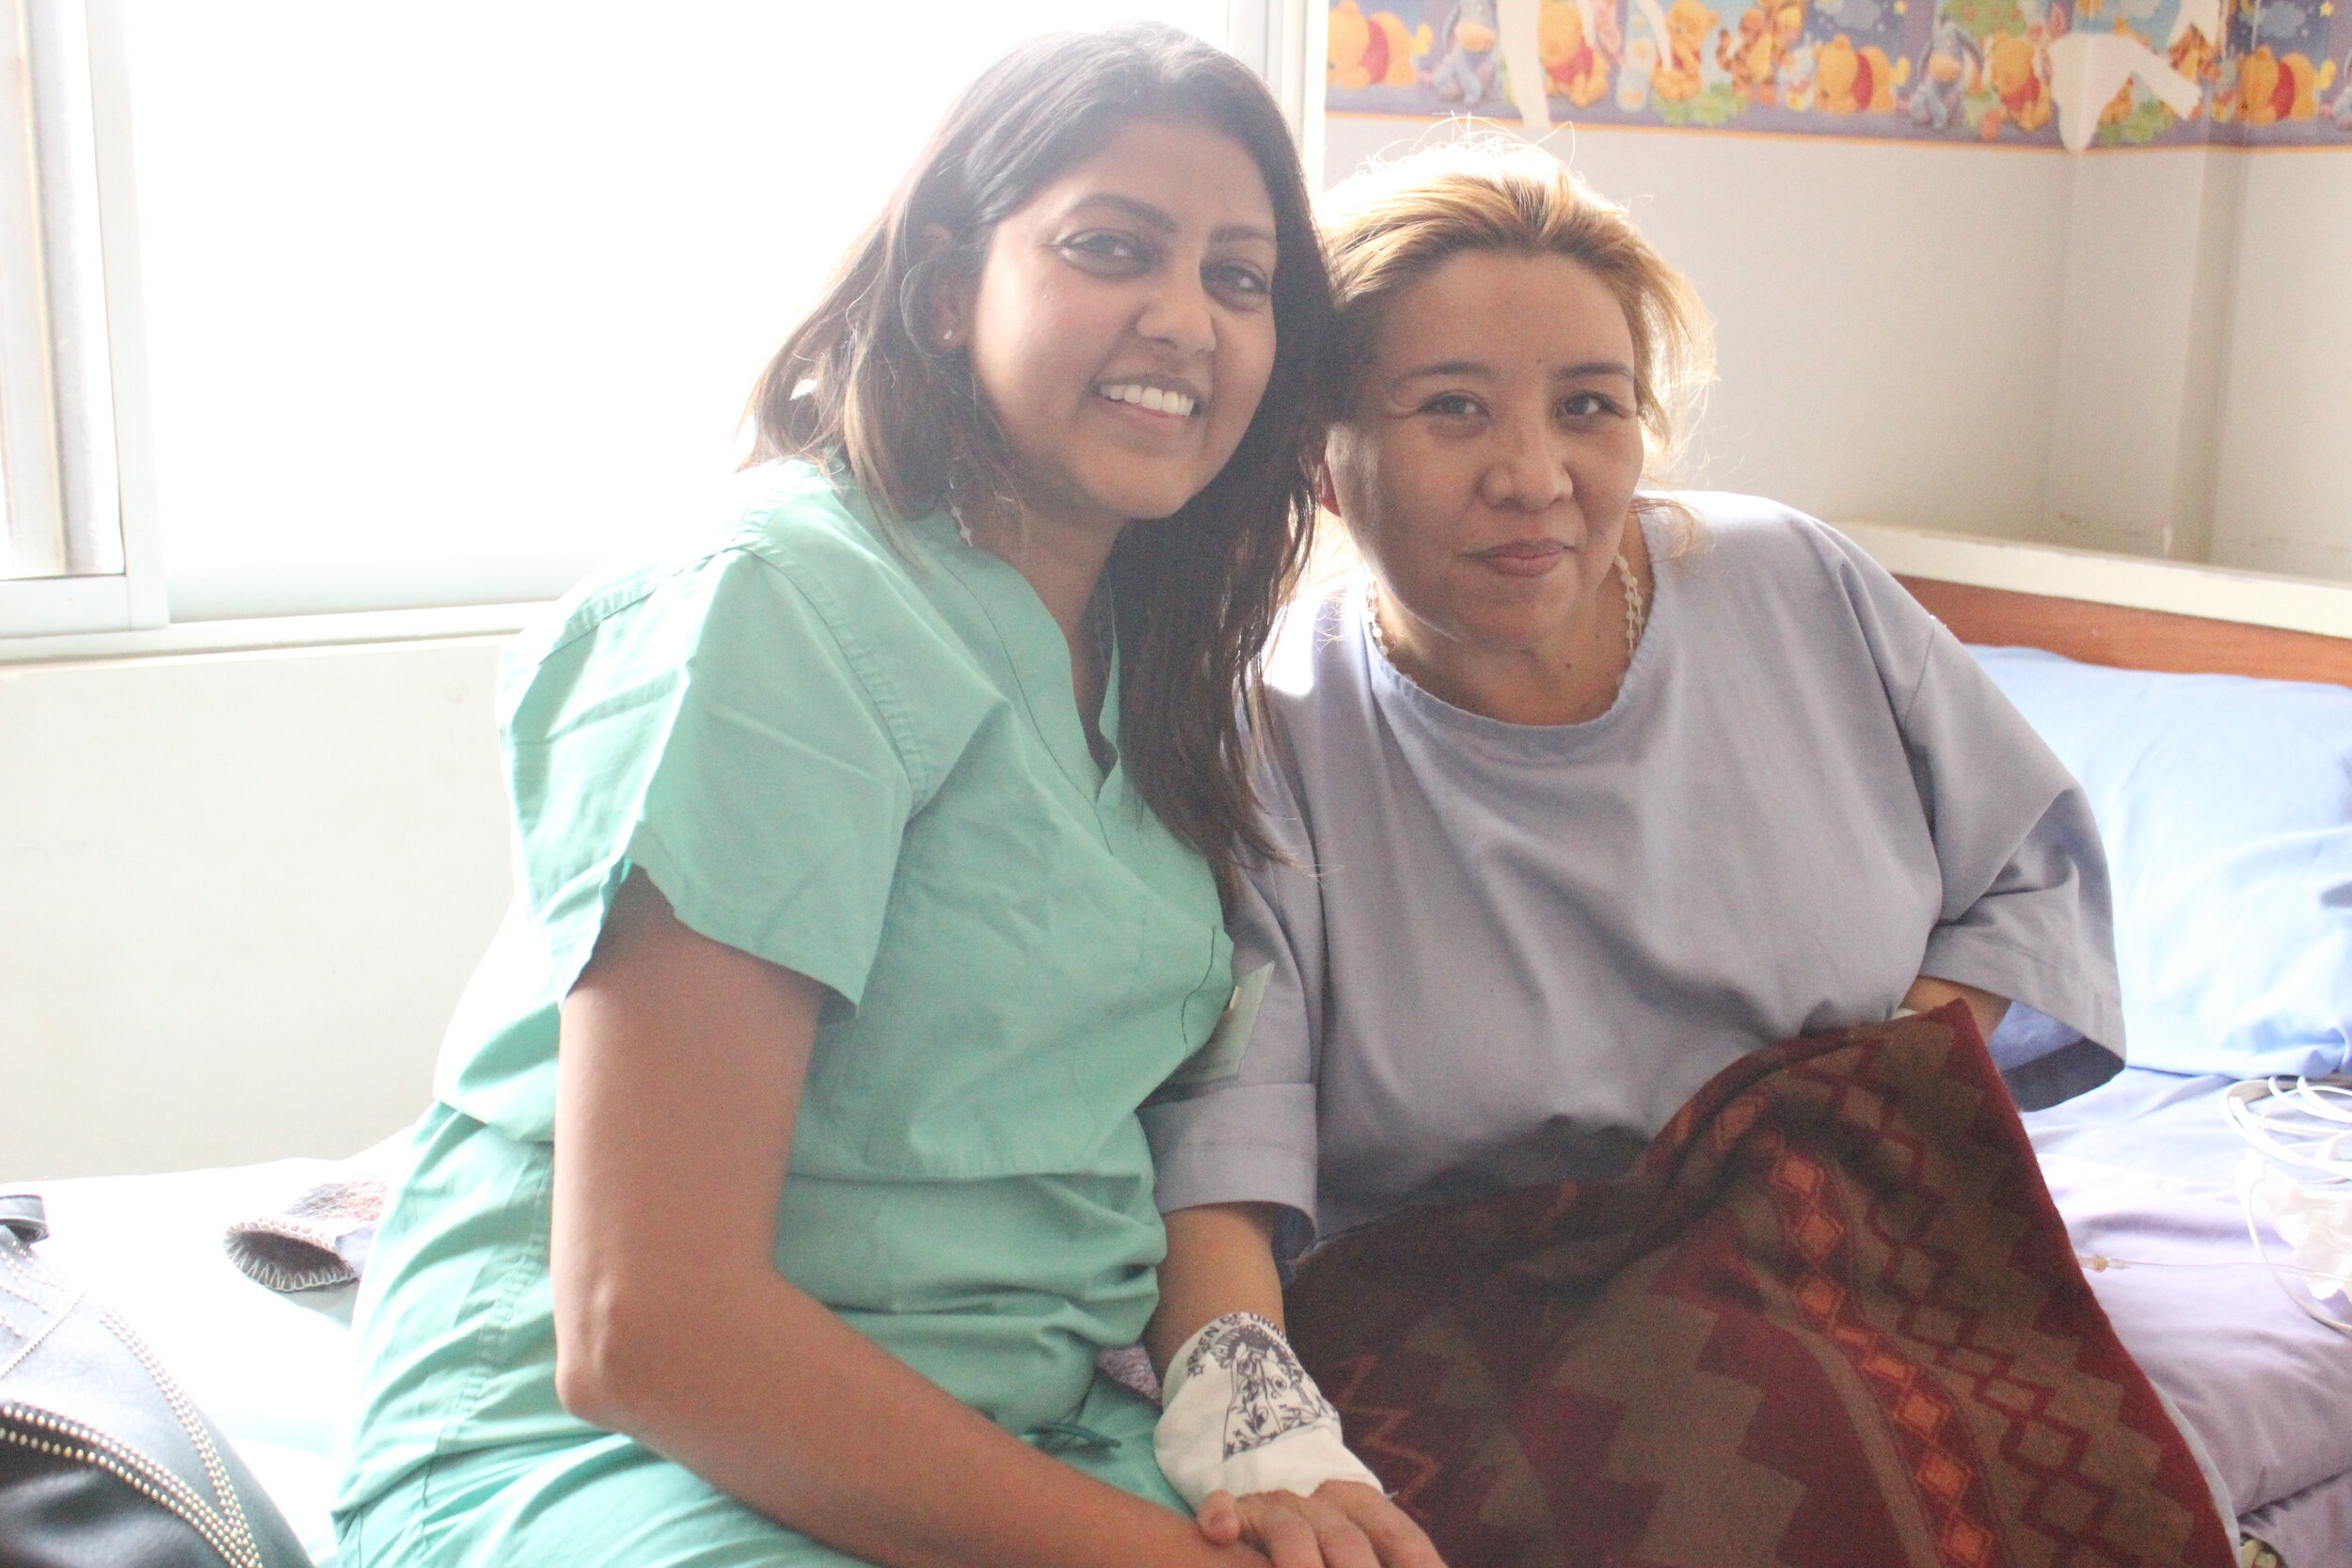 Shelly visits with one of her surgical patients, Galia.